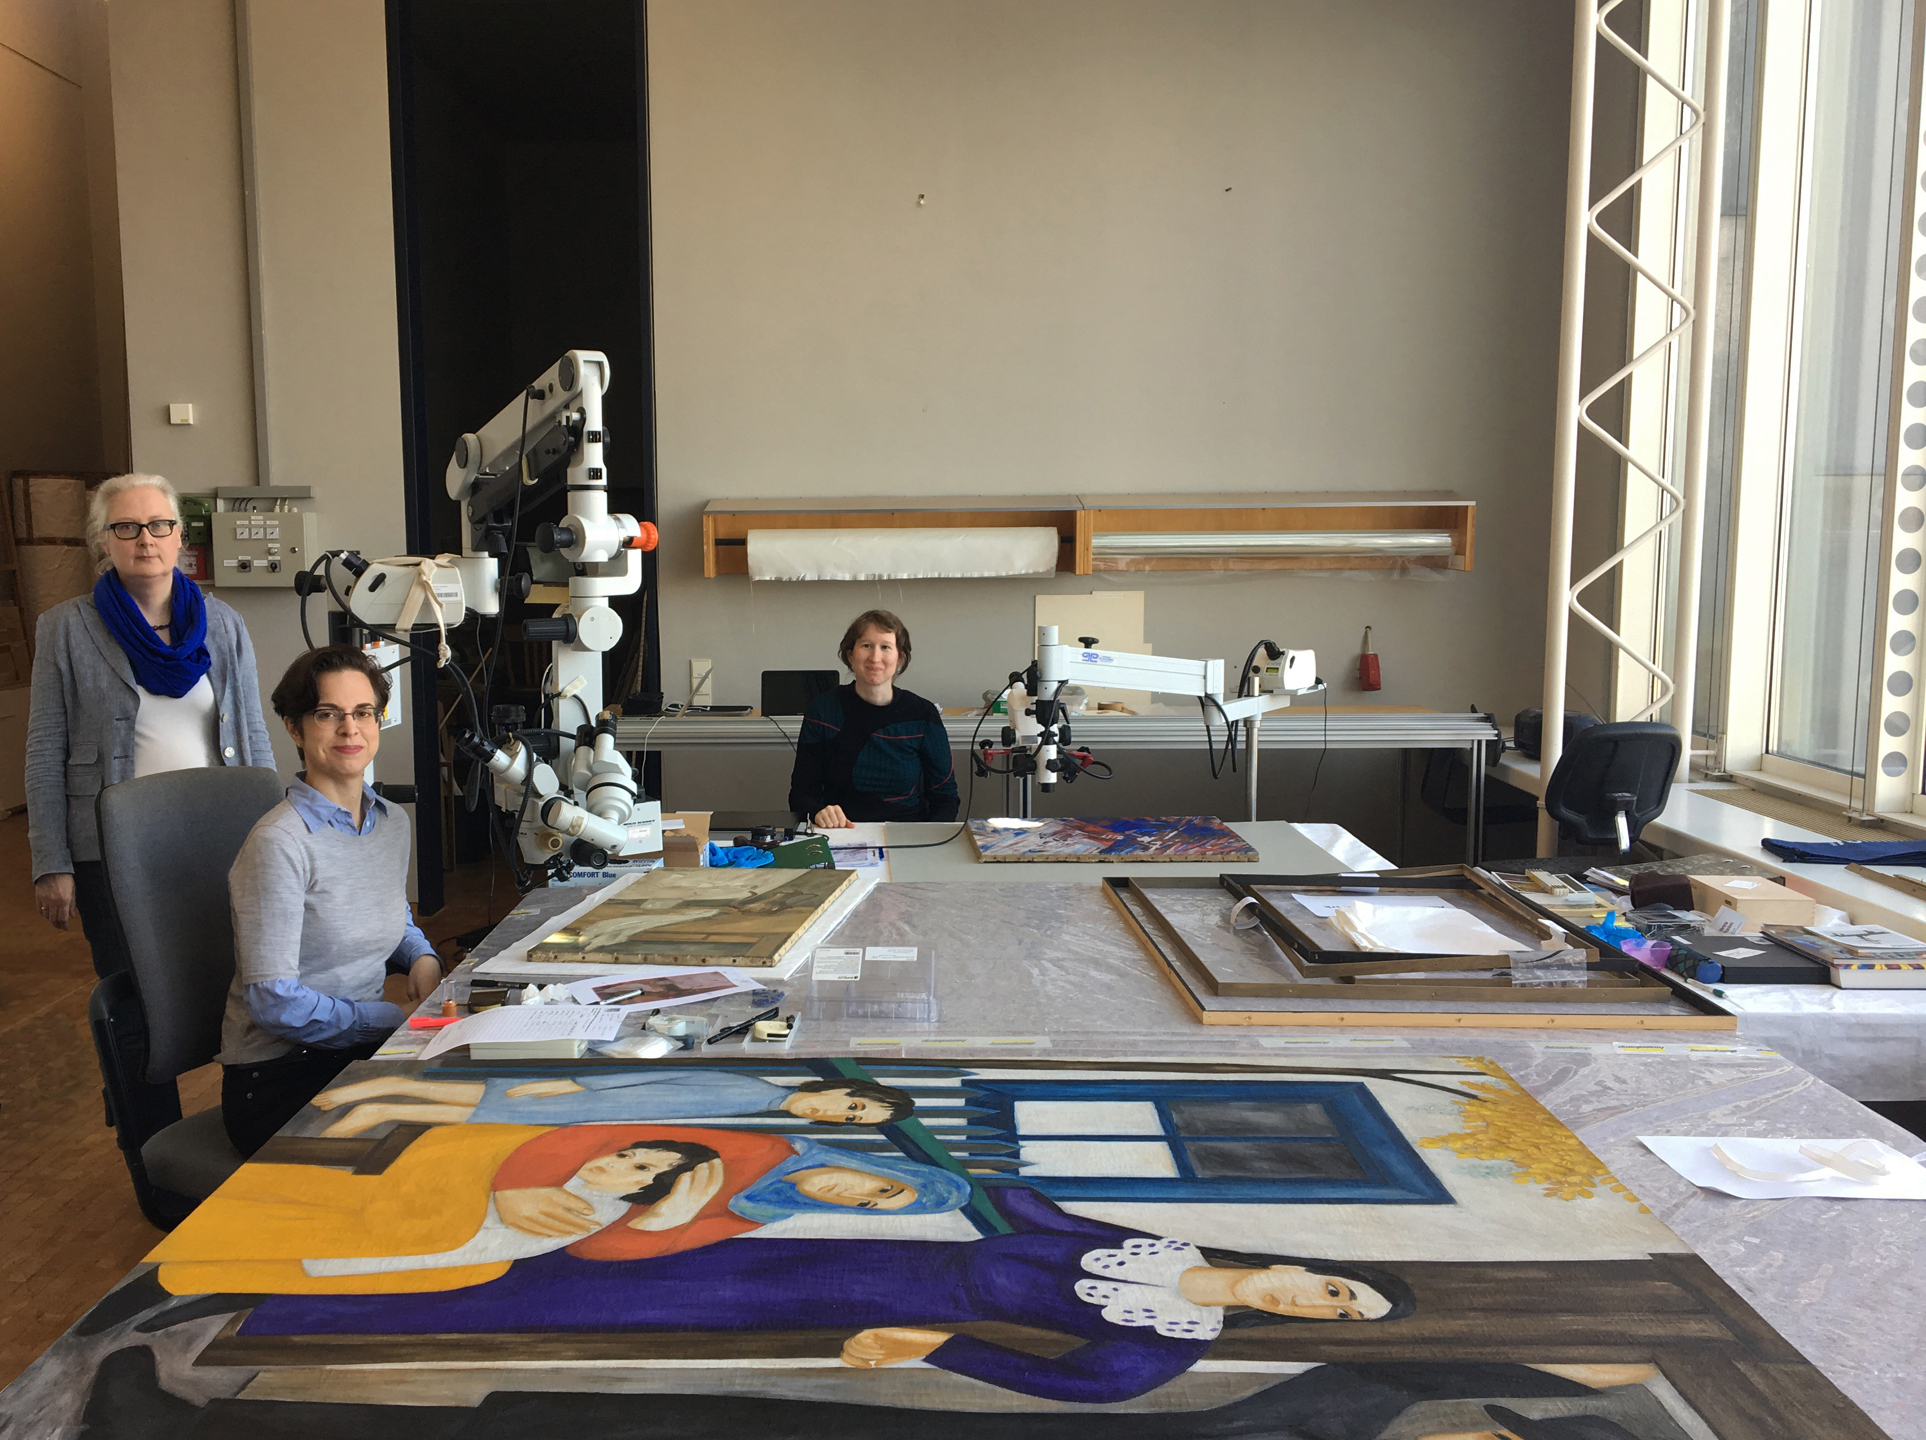 Examination of artworks at Museum Ludwig by Art Analysis & Research. From left to right, Petra Mandt (Conservator of Paintings, Museum Ludwig), Dr Jilleen Nadolny (Principal Investigator, Art Analysis & Research and Project Manager), Verena Franken (Independent researcher and Cologne project coordinator). Absent, Dr Nicholas Eastaugh (Chief Scientist, AA&R).  © Museum Ludwig, 2017. All rights reserved.